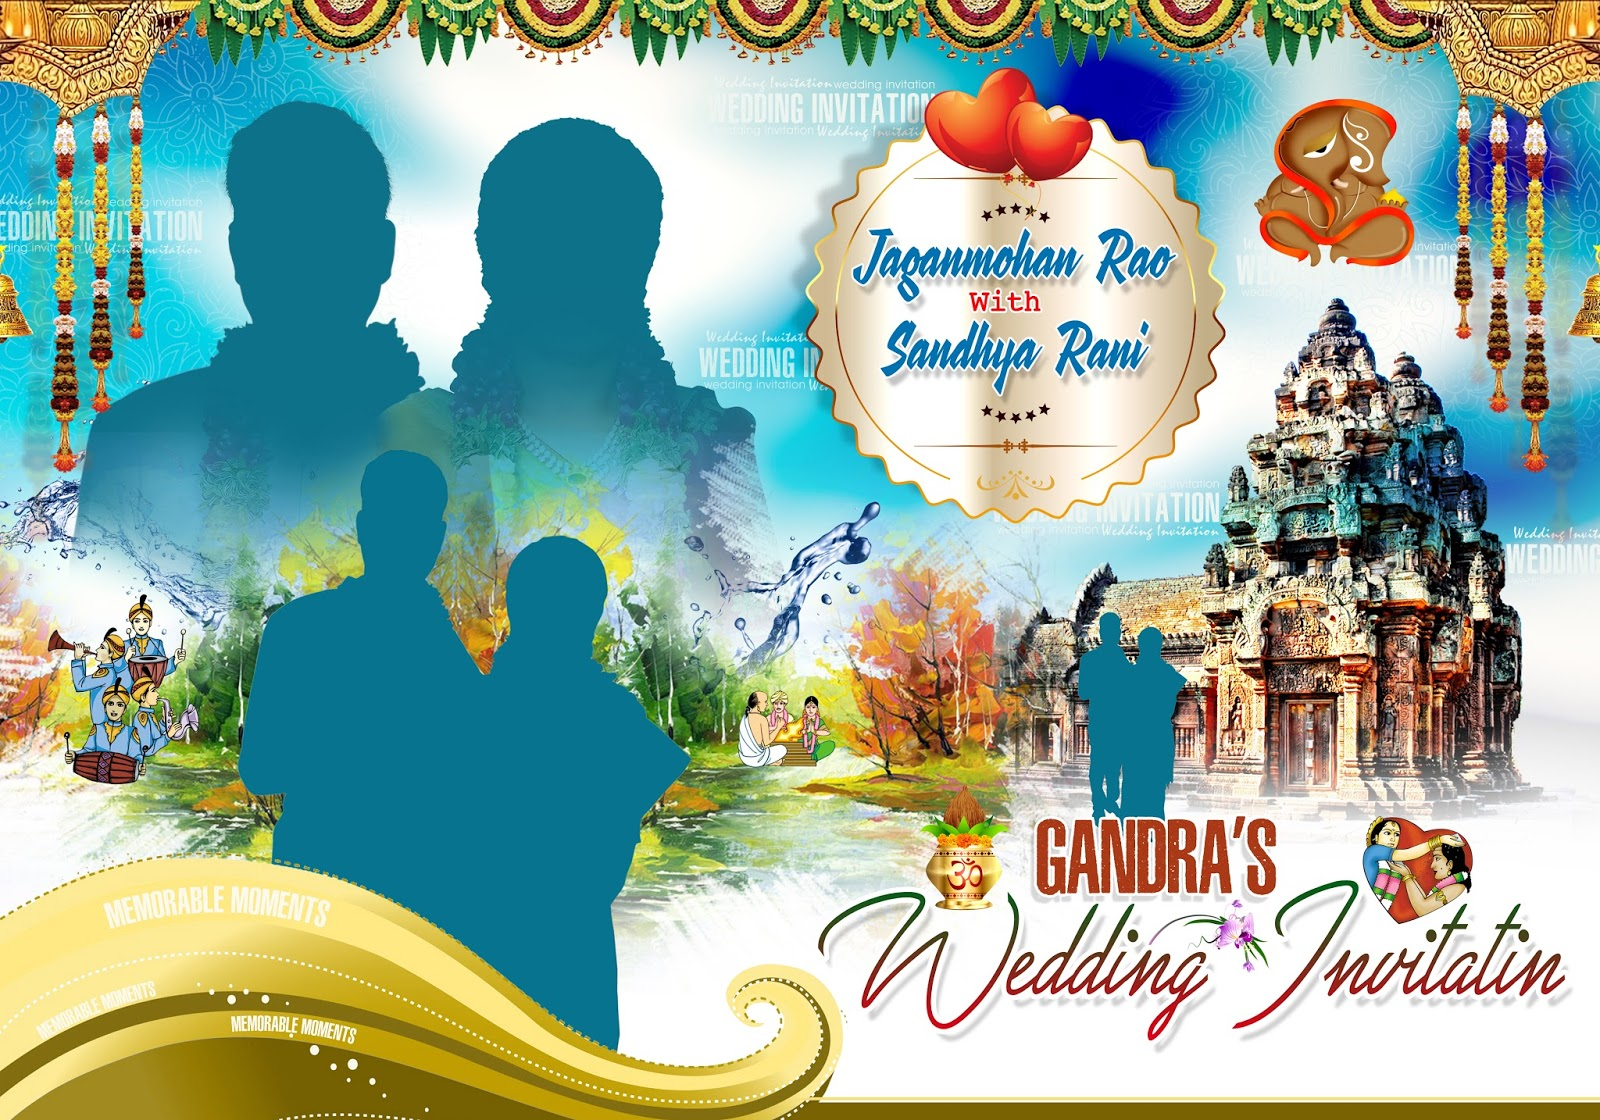 indian wedding banners psd template free downloads - gfx all free